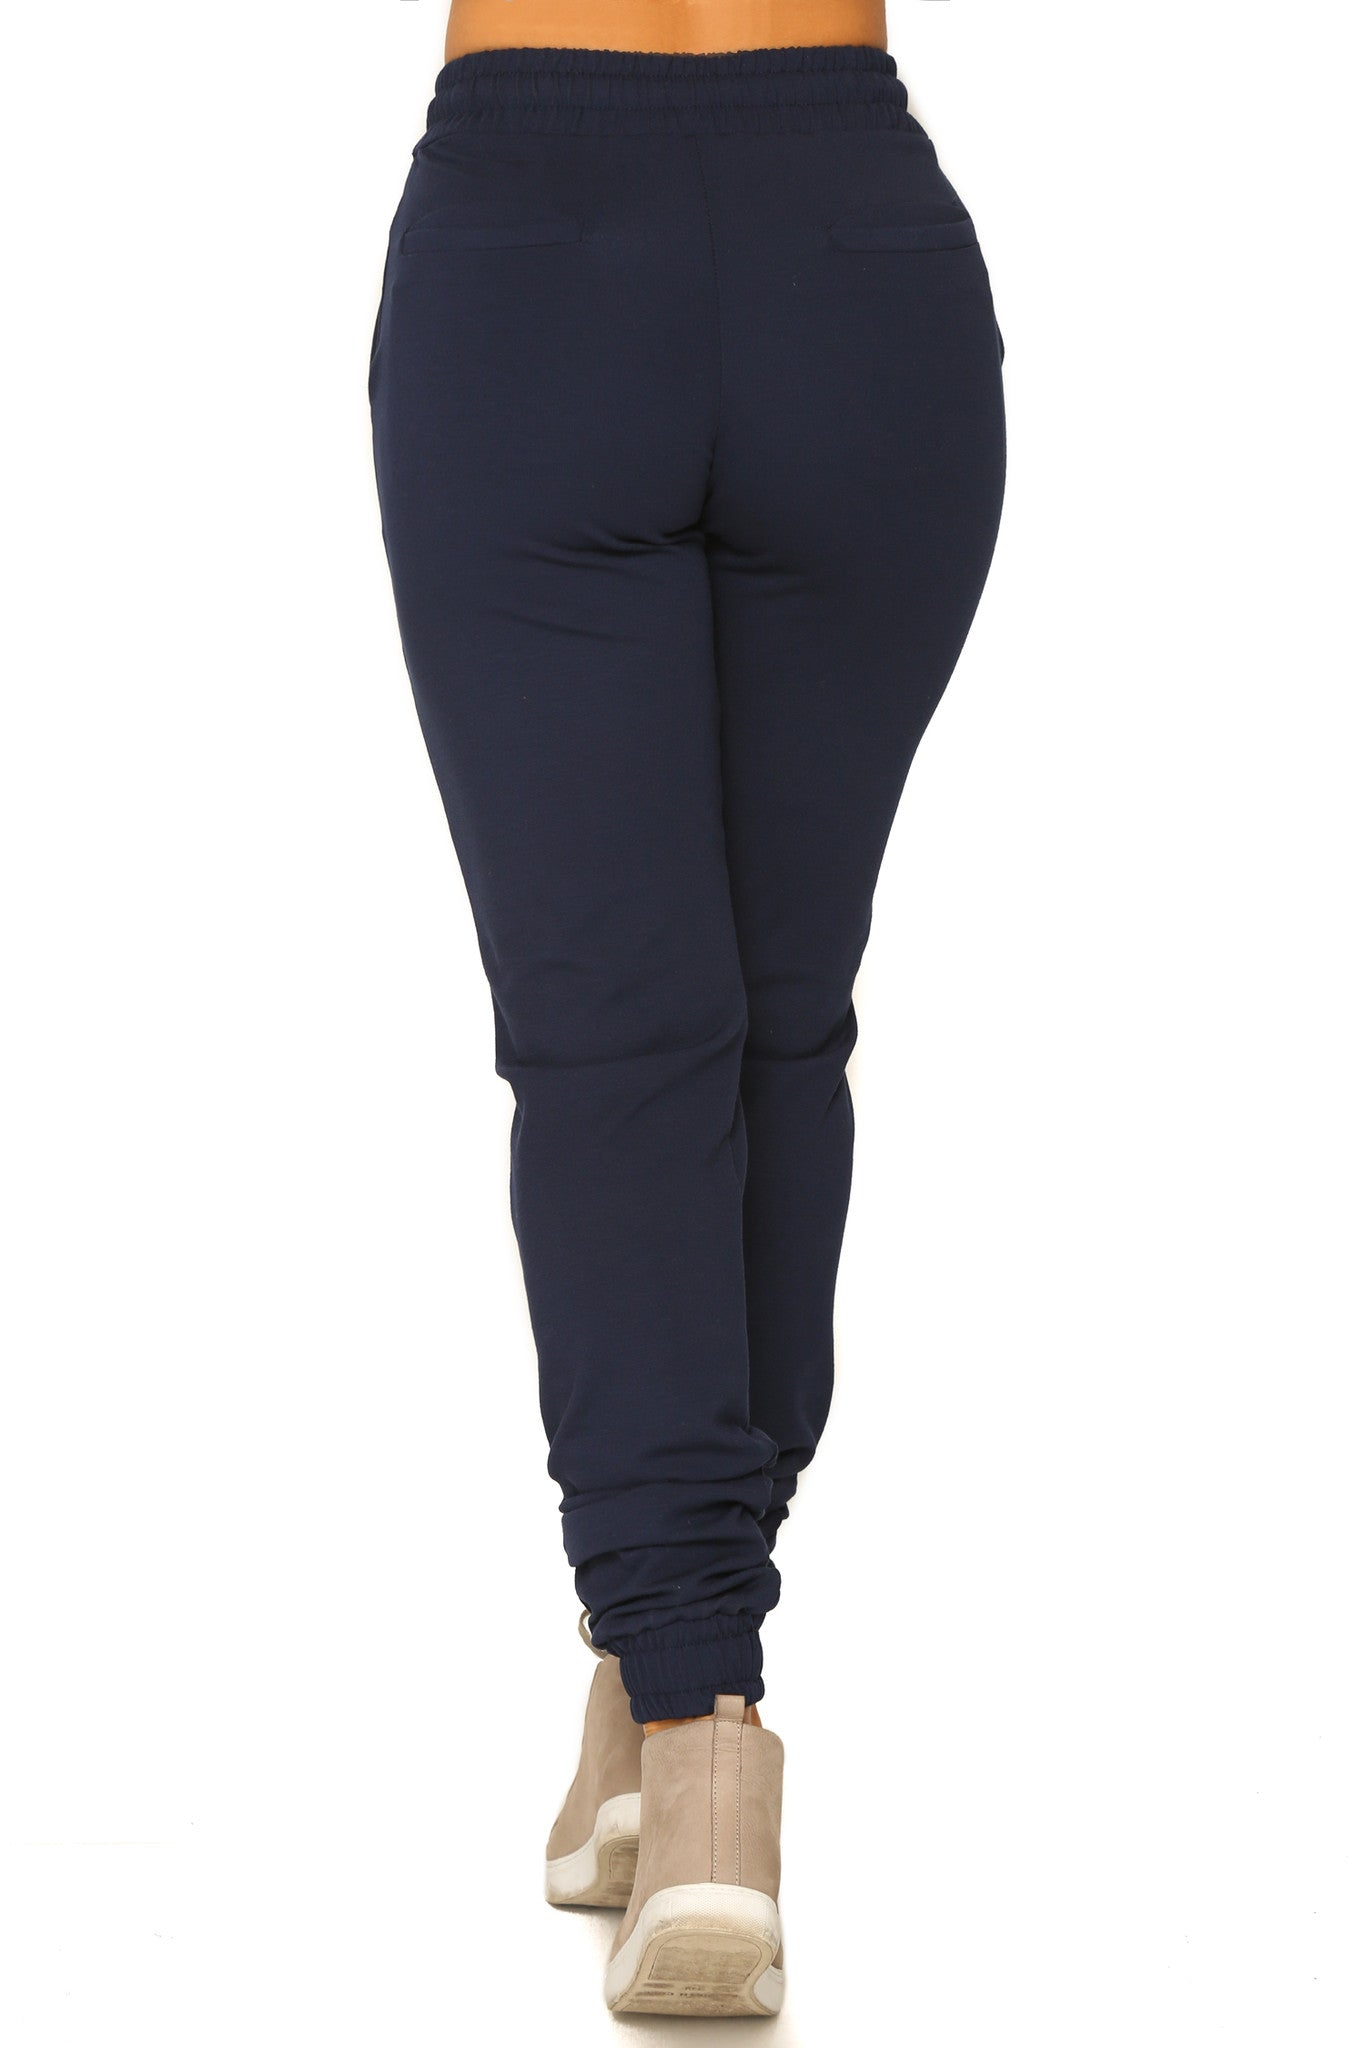 TAWNY SWEAT PANTS - Glam Envy - 3